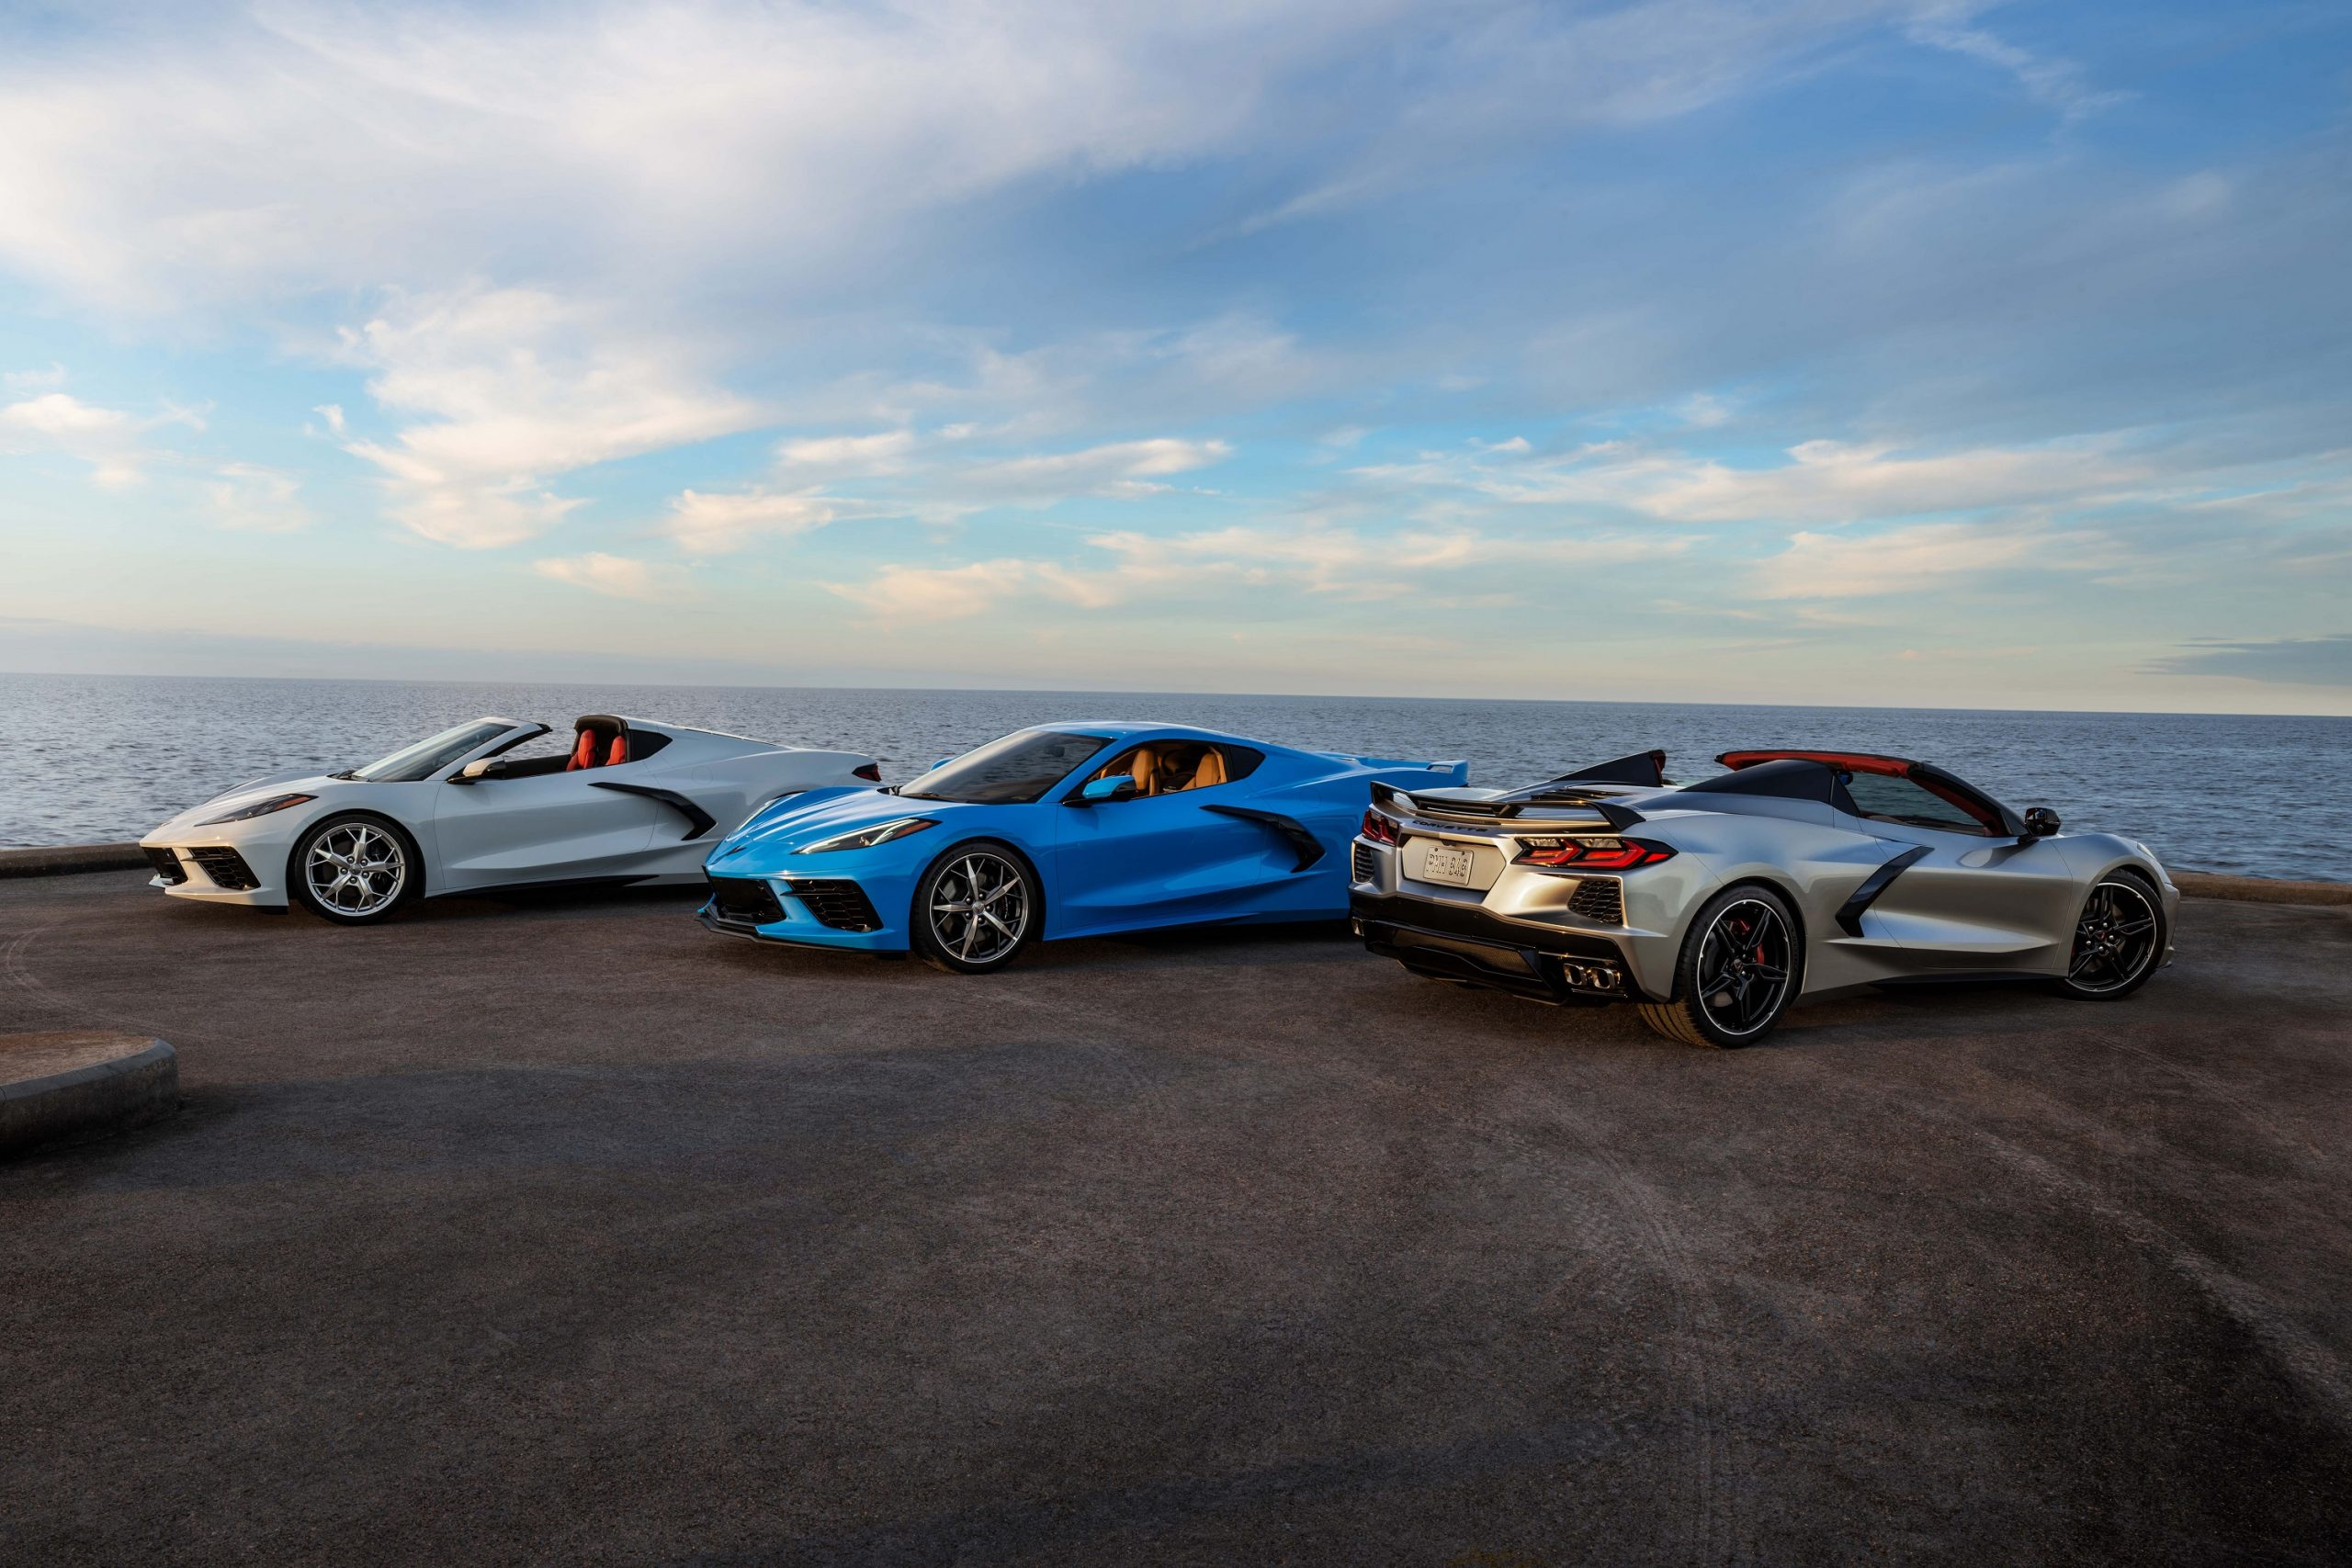 A trio of Chevrolet Corvette models shot at the 3/4 angle by the sea